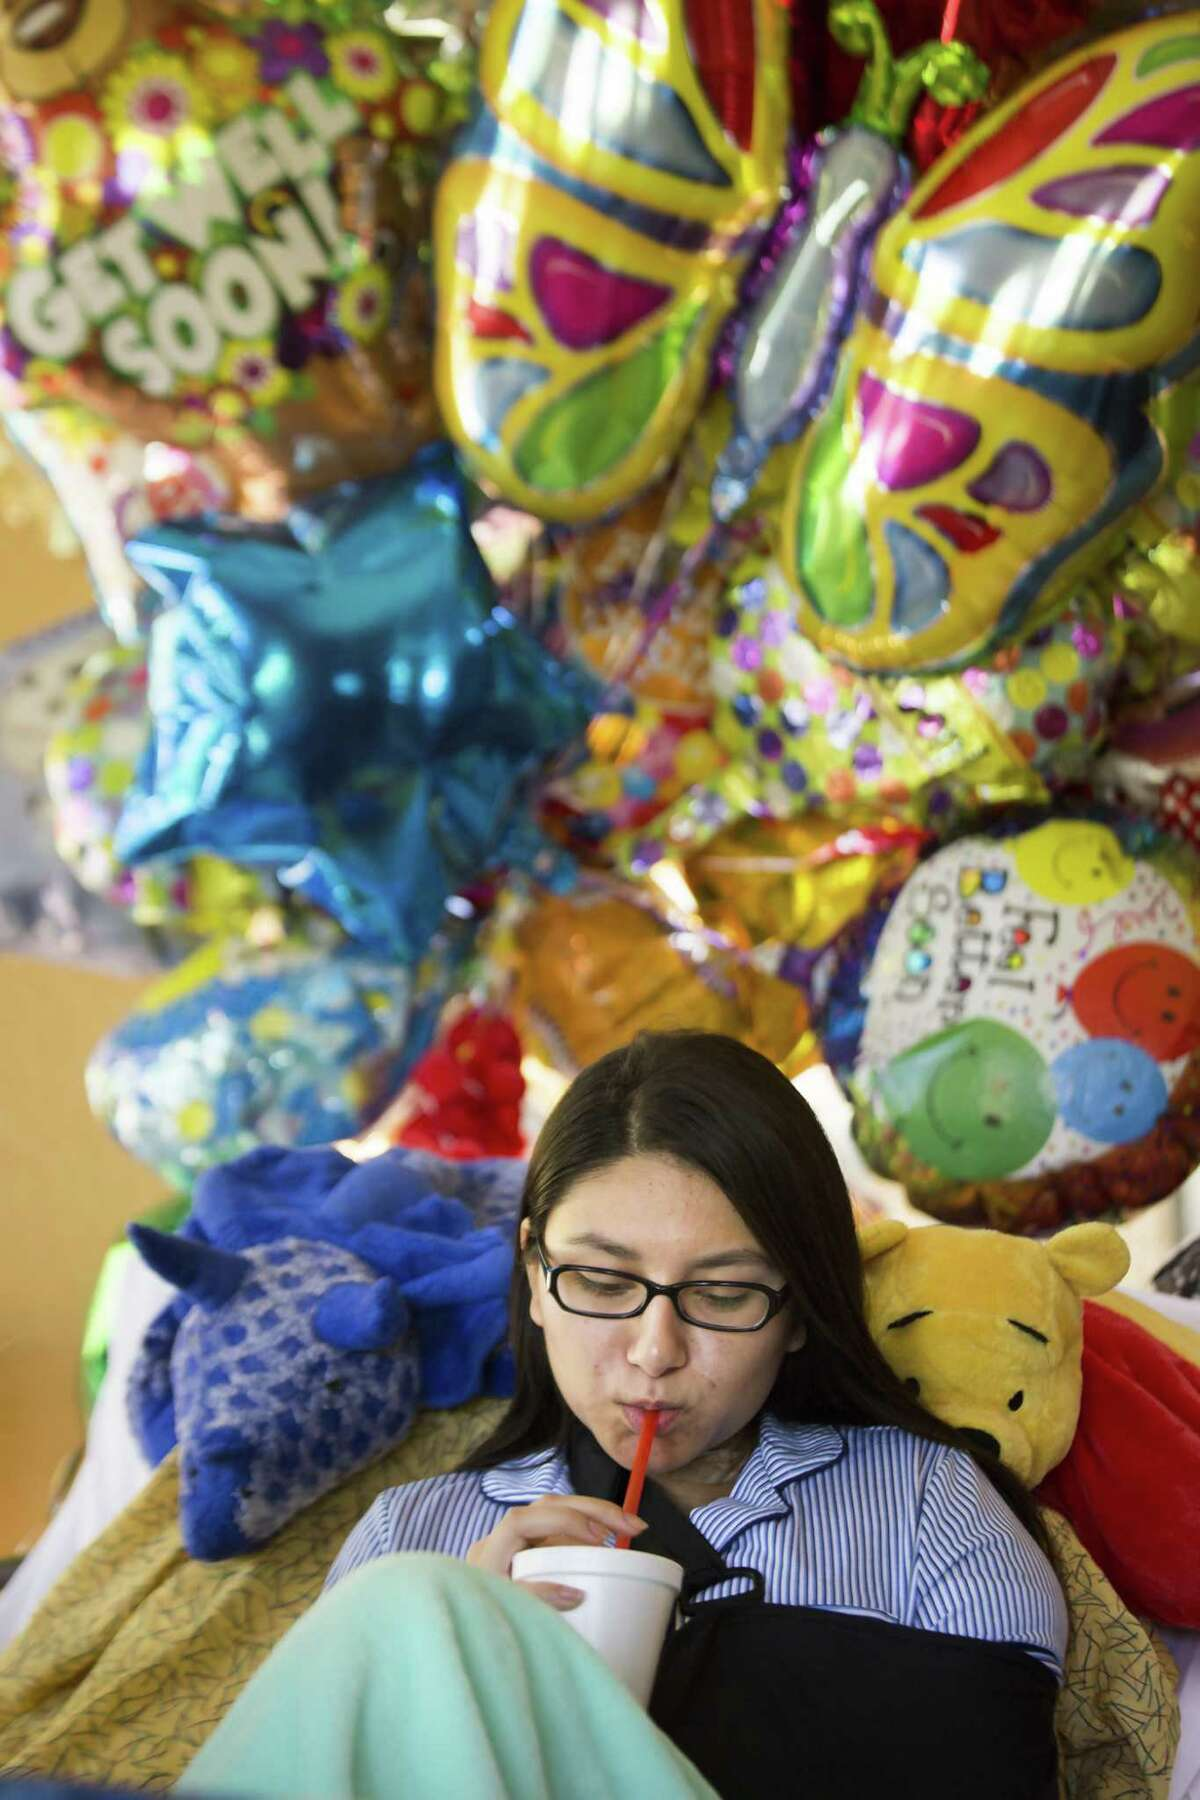 For several weeks, Santa Fe High School student Sarah Salazar will have a liquid diet until her fractured jaw is healed. Salazar was shot during a shooting at her high school and is recuperating from a shattered shoulder, a broken jaw and ribs. ( Marie D. De Jesus / Houston Chronicle )